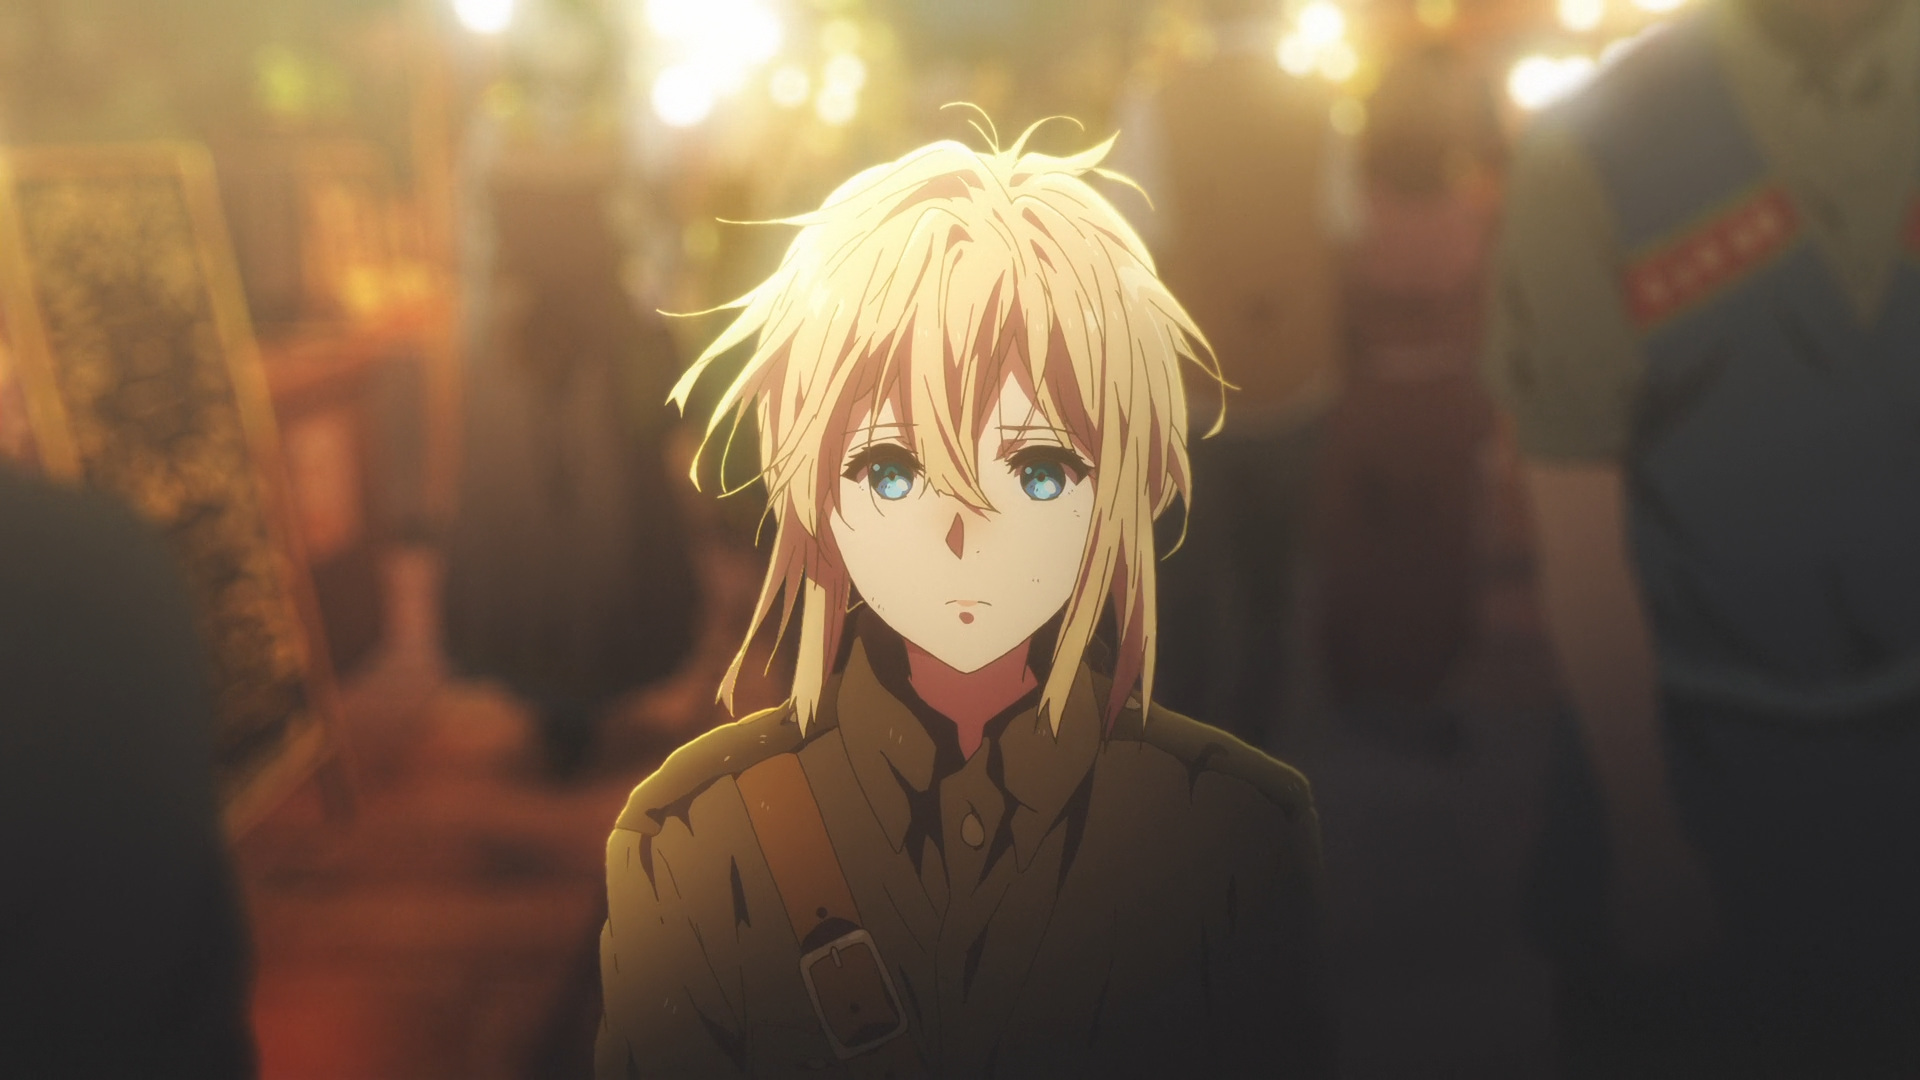 Violet Evergarden Wallpapers High Quality | Download Free